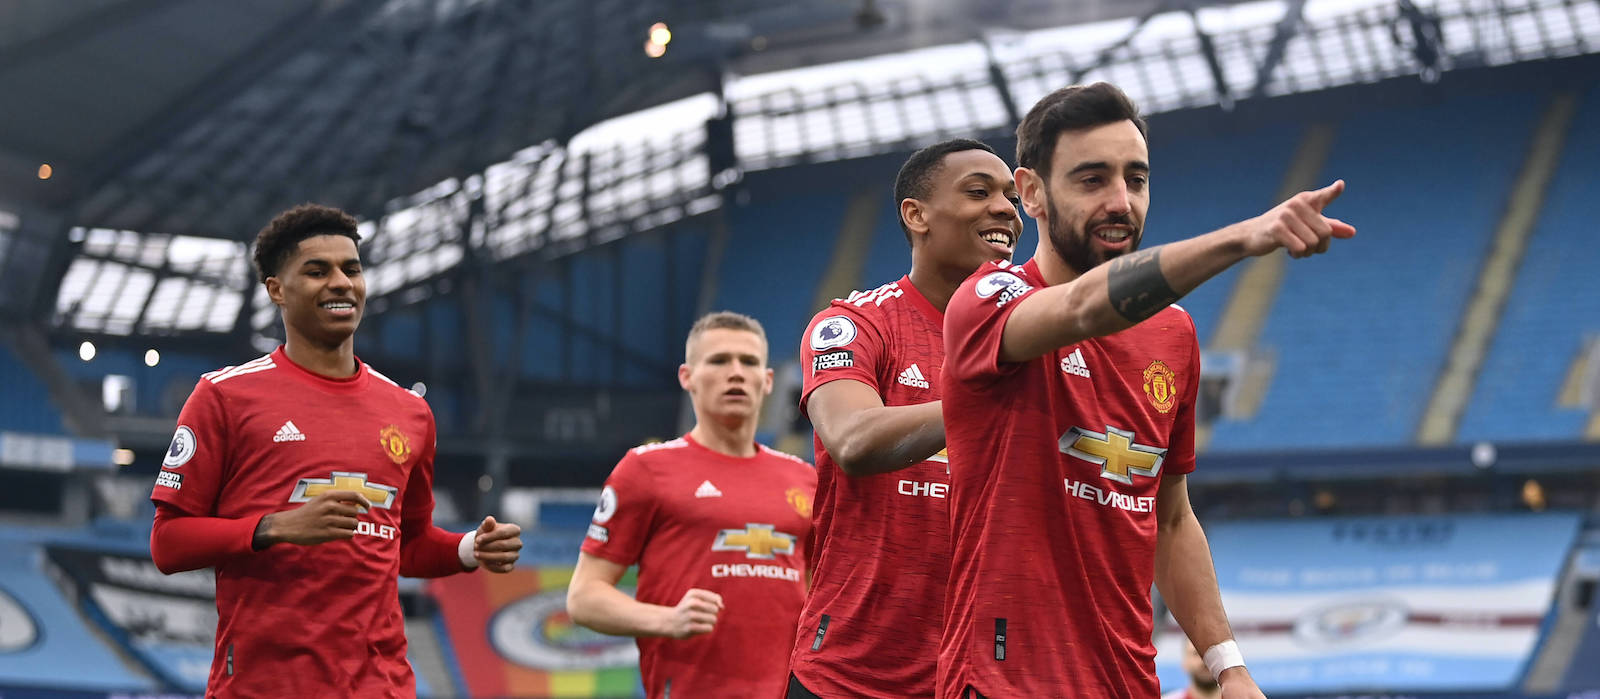 Man Utd make huge statement in bid to keep Bruno Fernandes – report